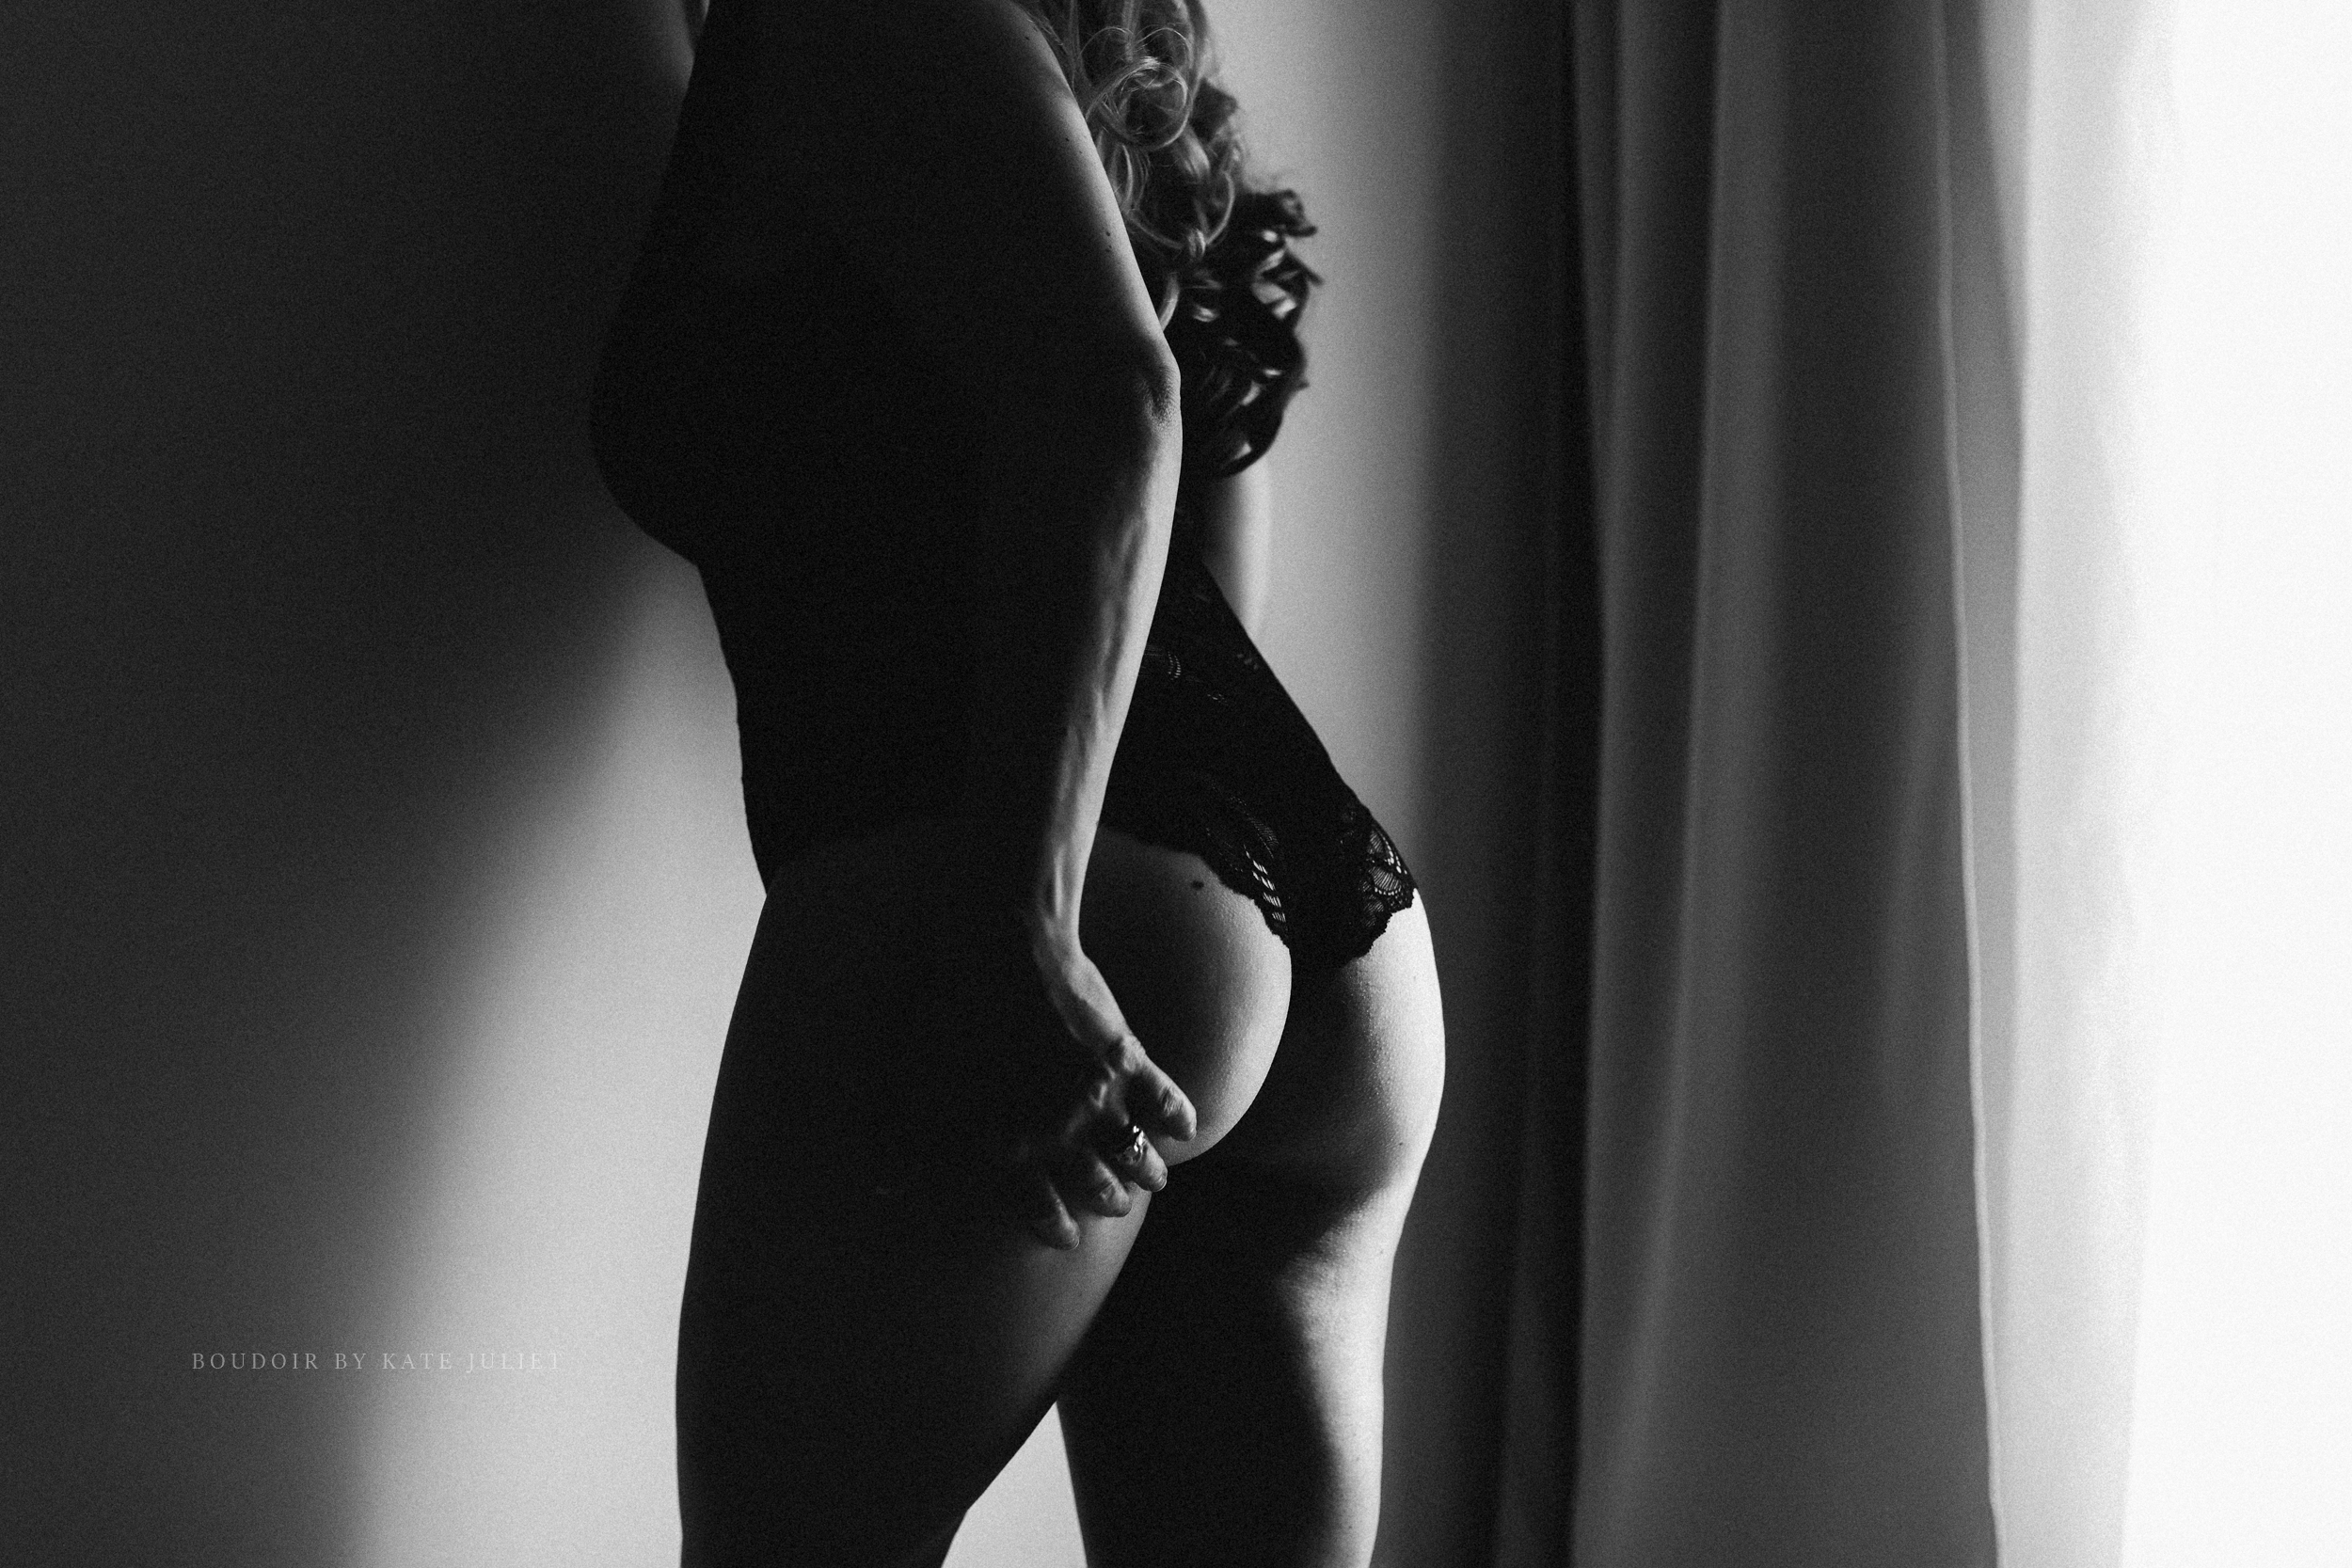 loudoun-county-boudoir-photographer